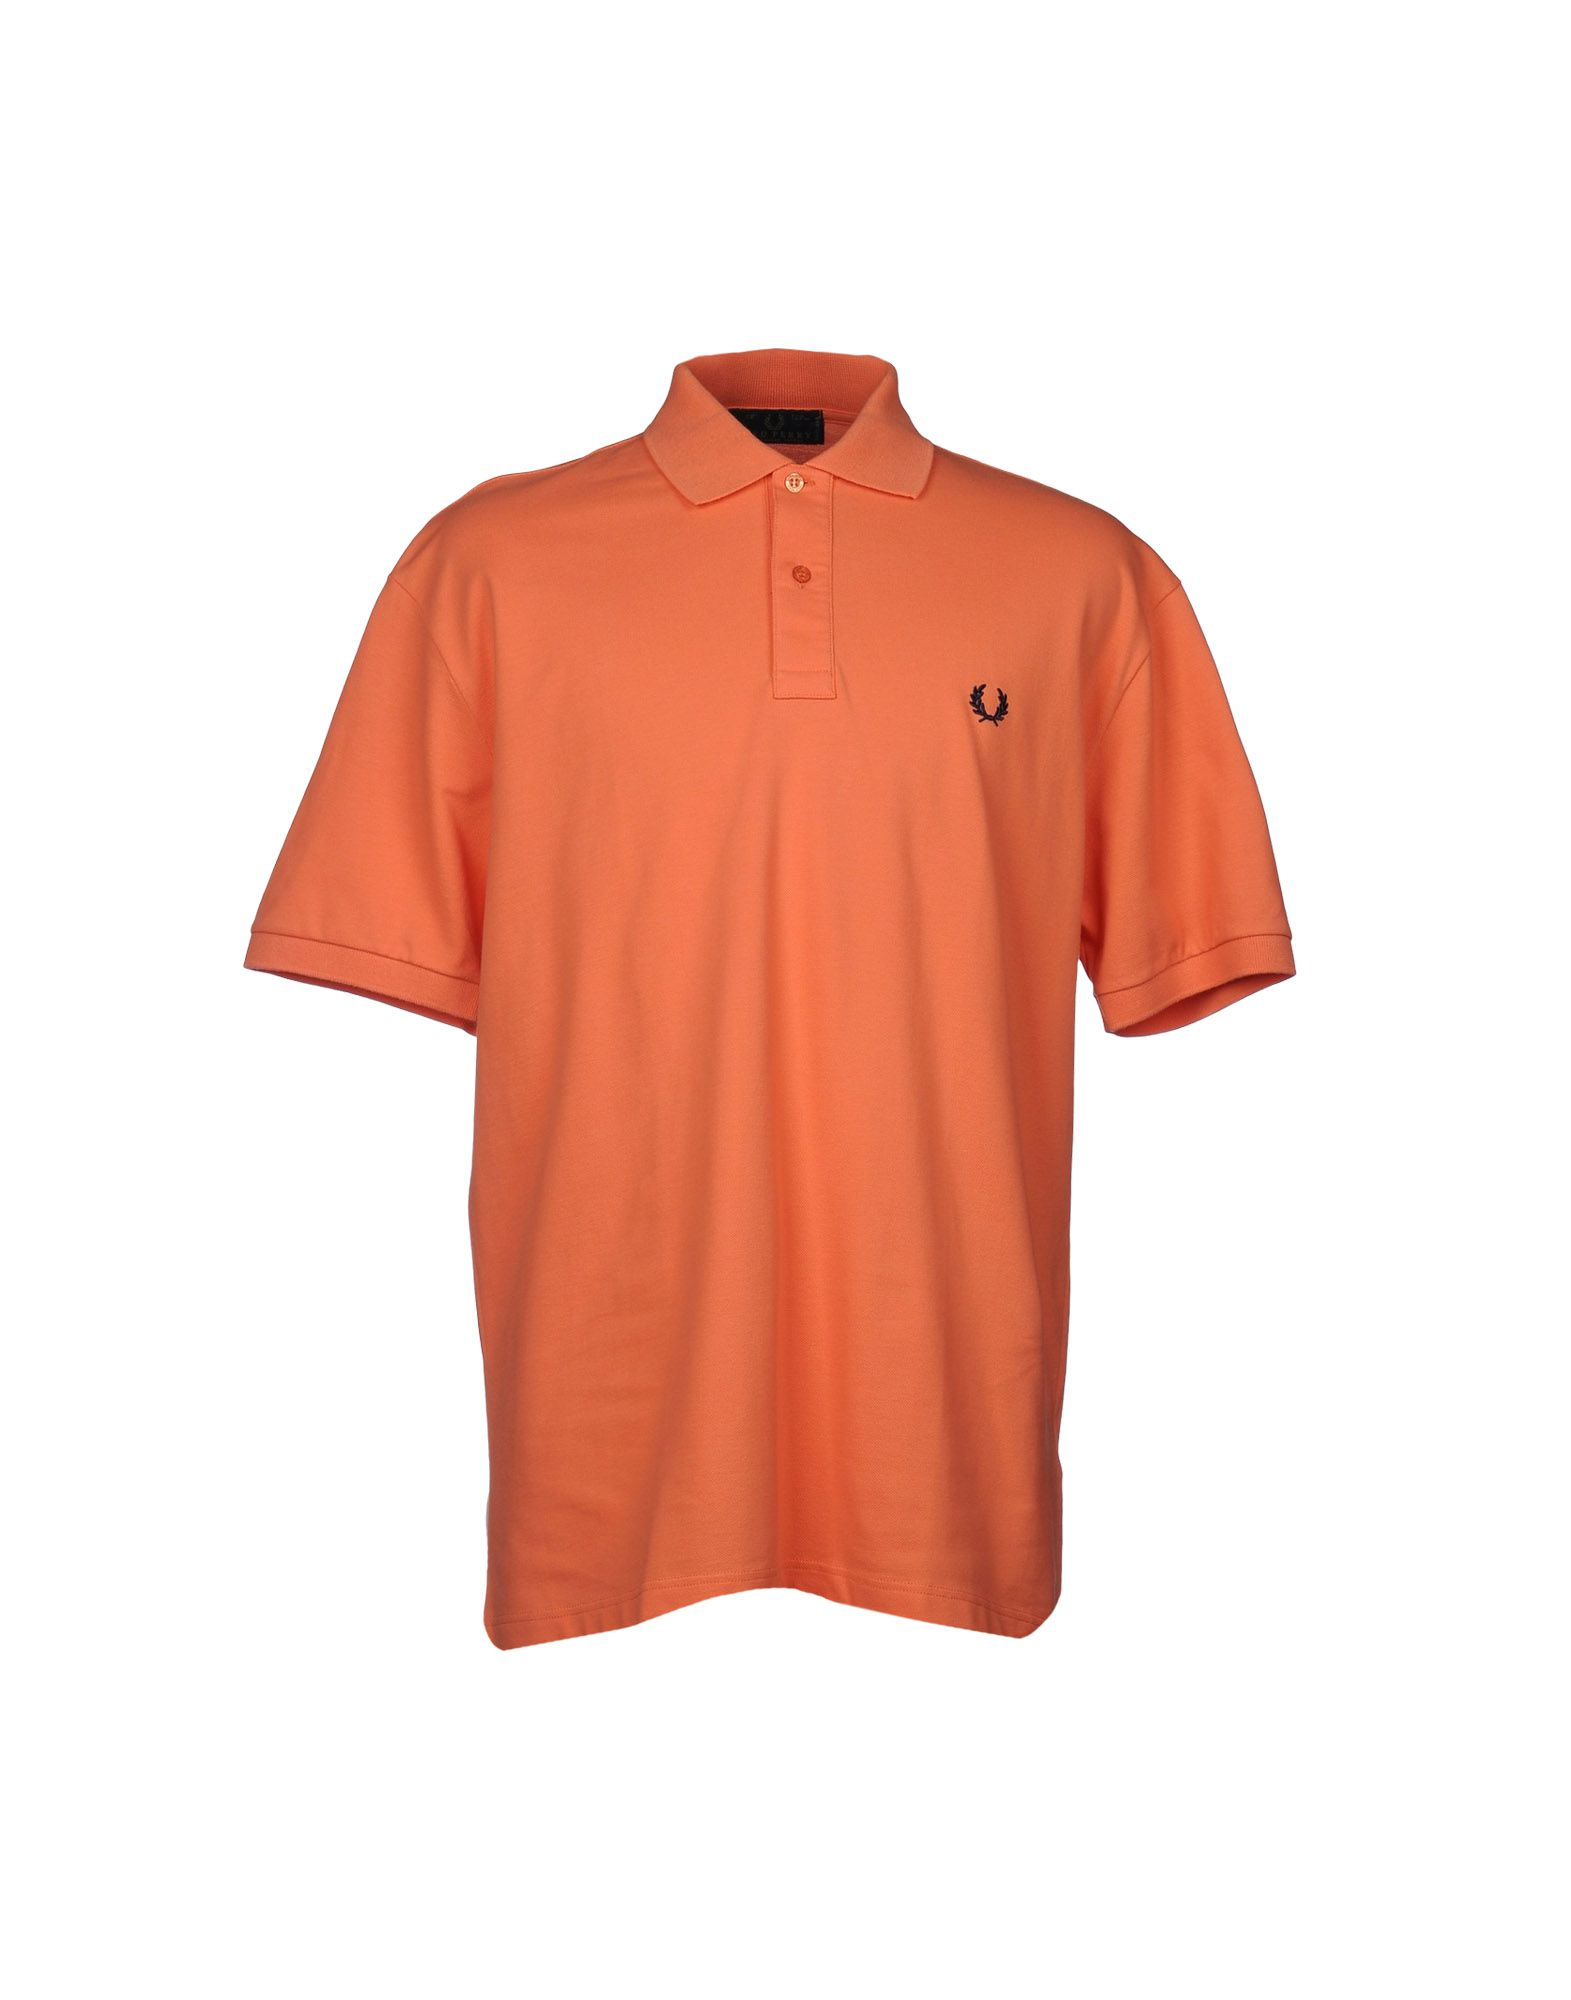 fred perry polo shirt in orange for men lyst. Black Bedroom Furniture Sets. Home Design Ideas